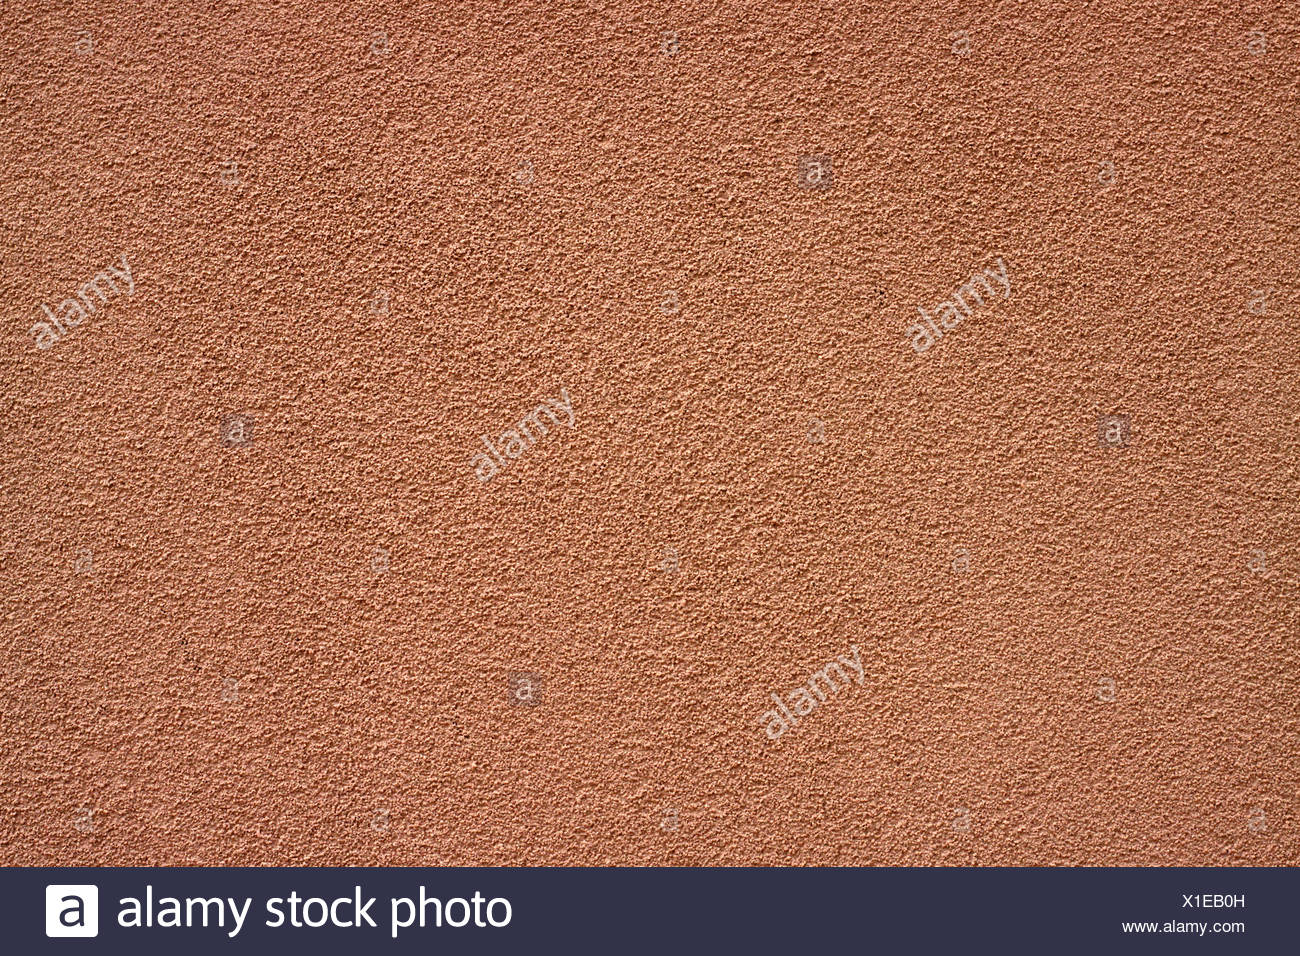 Background and Texture - Sand Rendered External Residential Wall - Stock Image